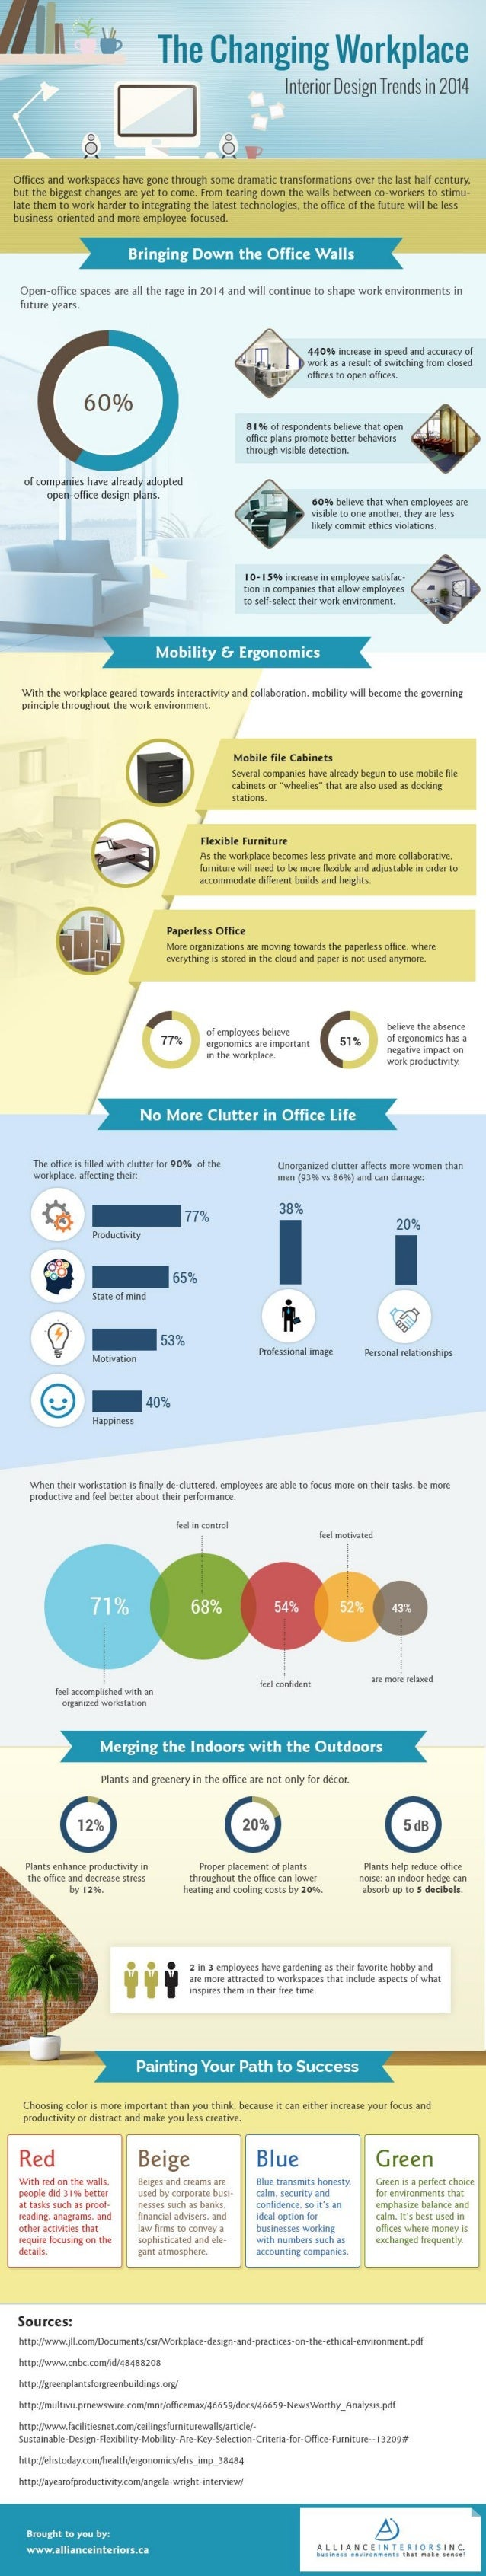 ging Workplace  Interior Design Trends in 2014     Offices and workspaces have gone through some dramatic transformations ...